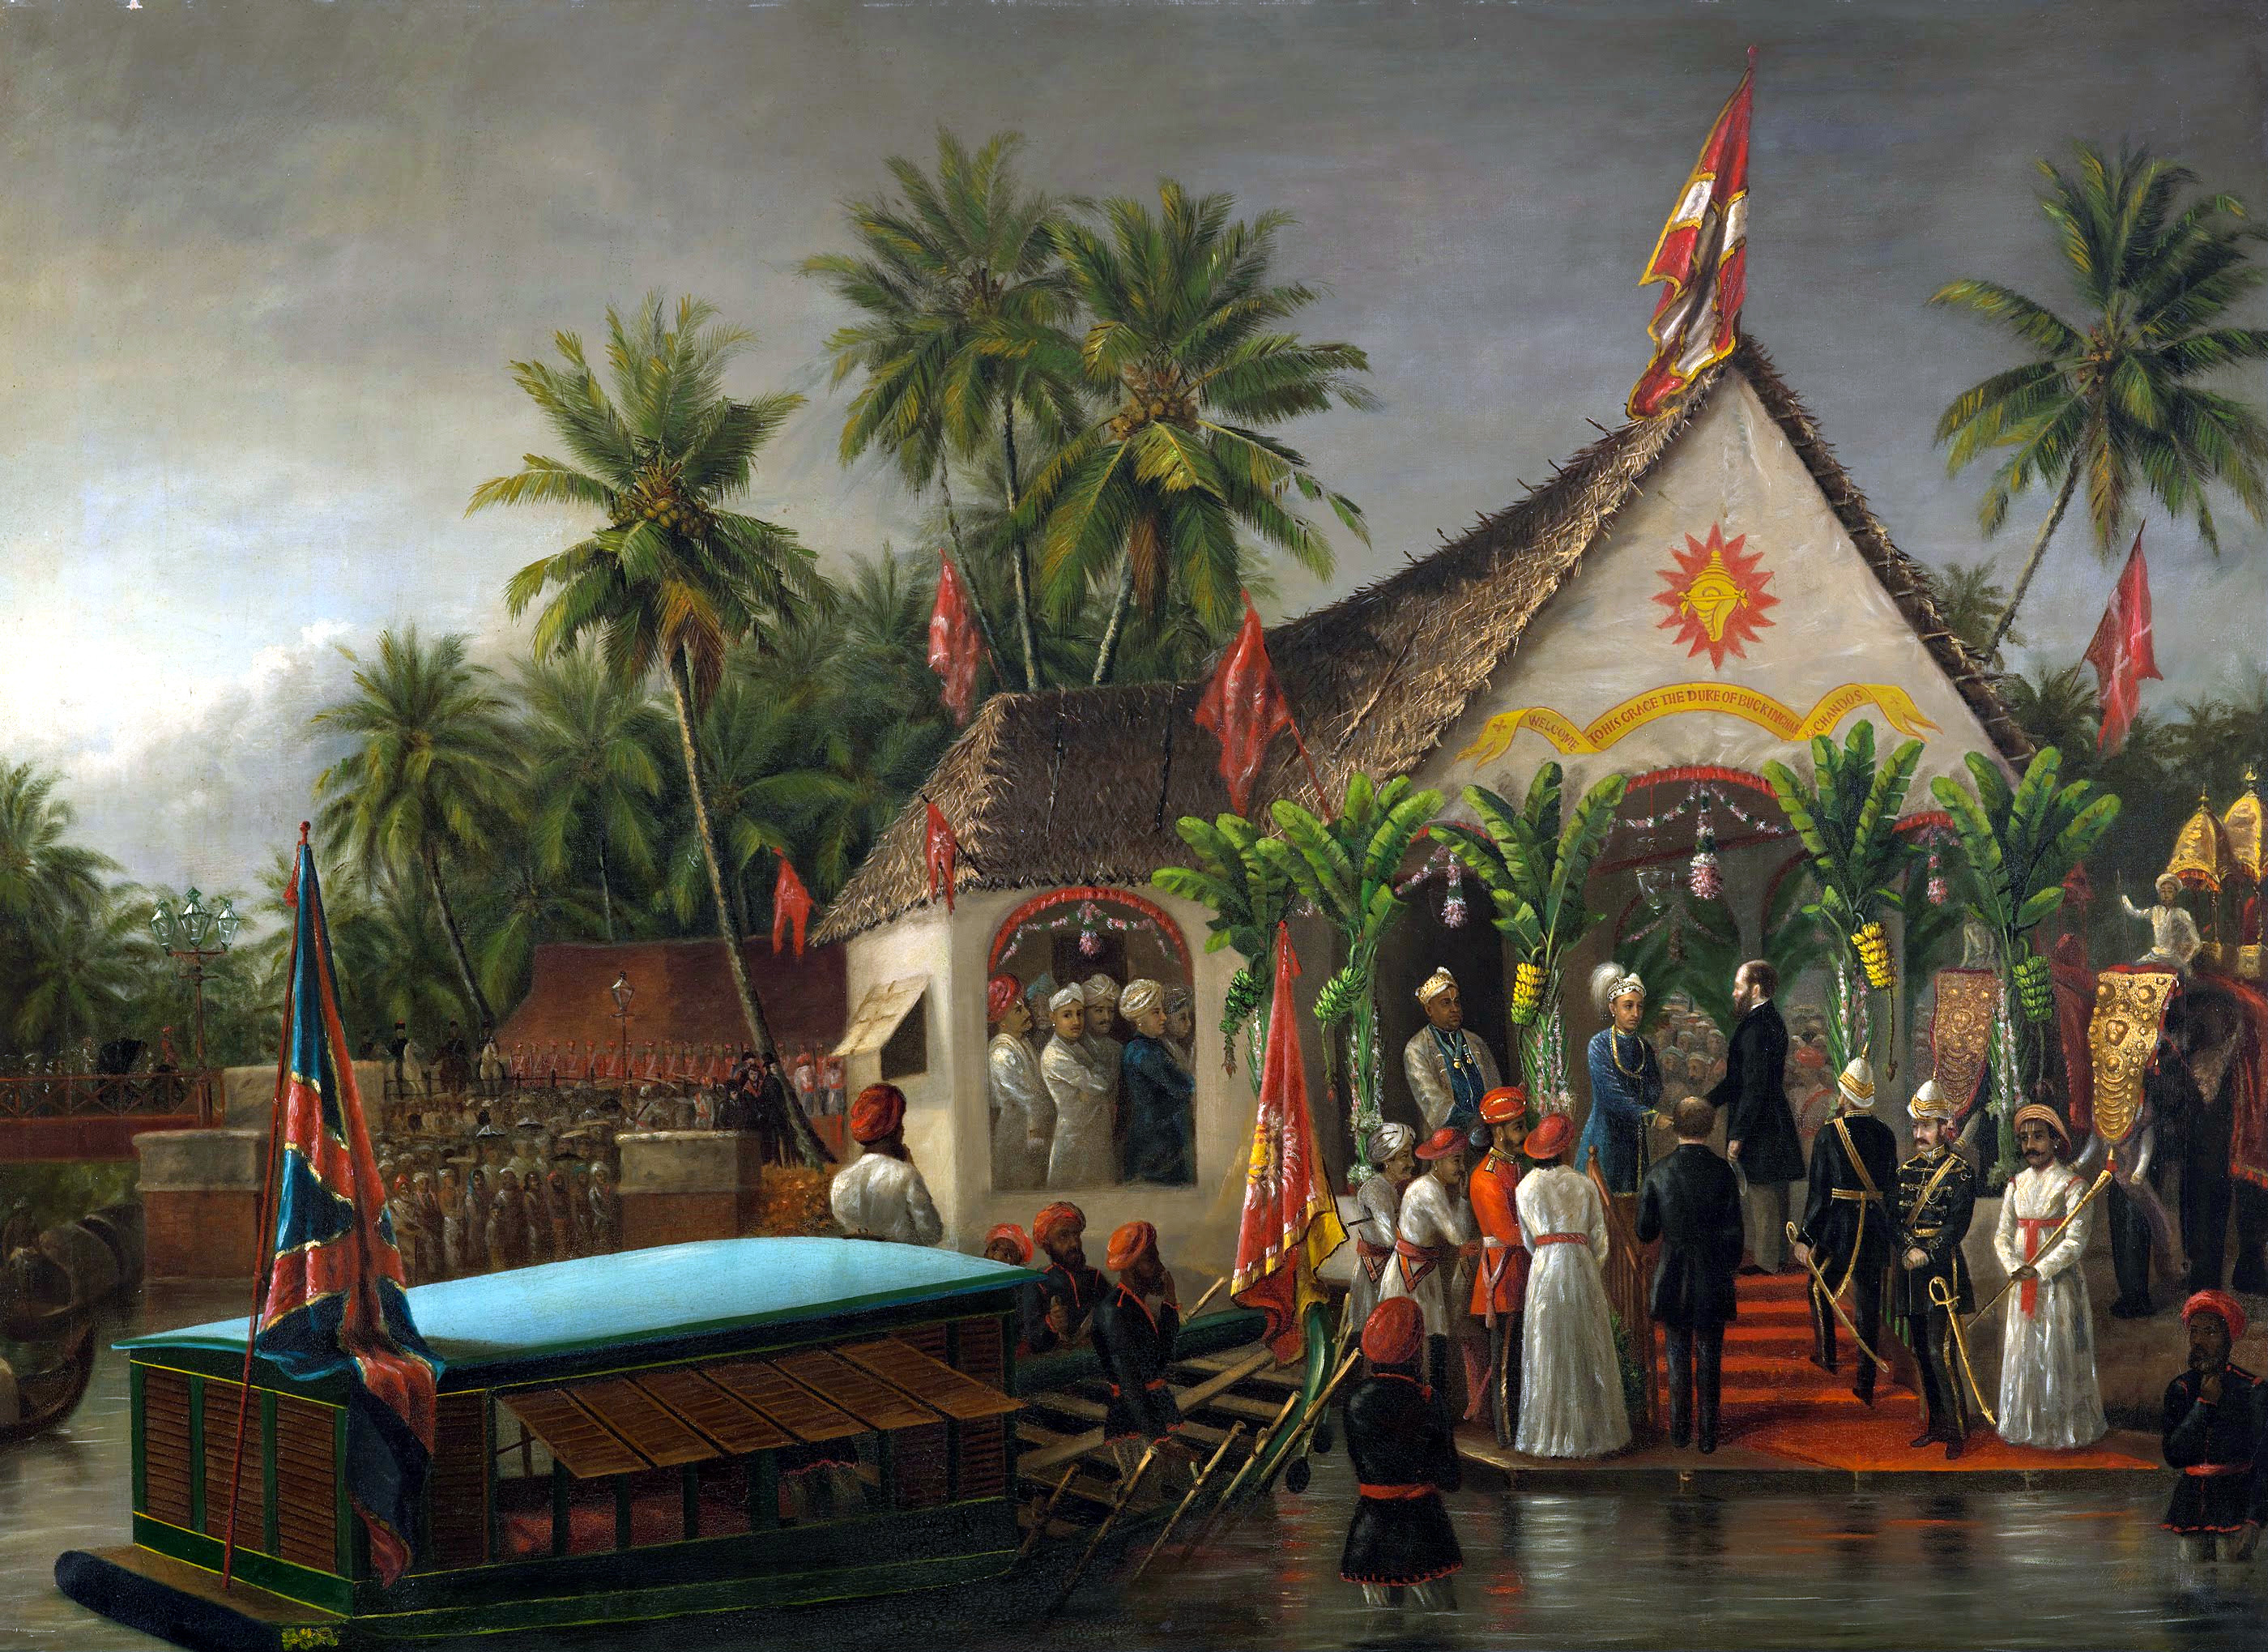 File:Raja ravivarma painting 50 historic meeting.jpg